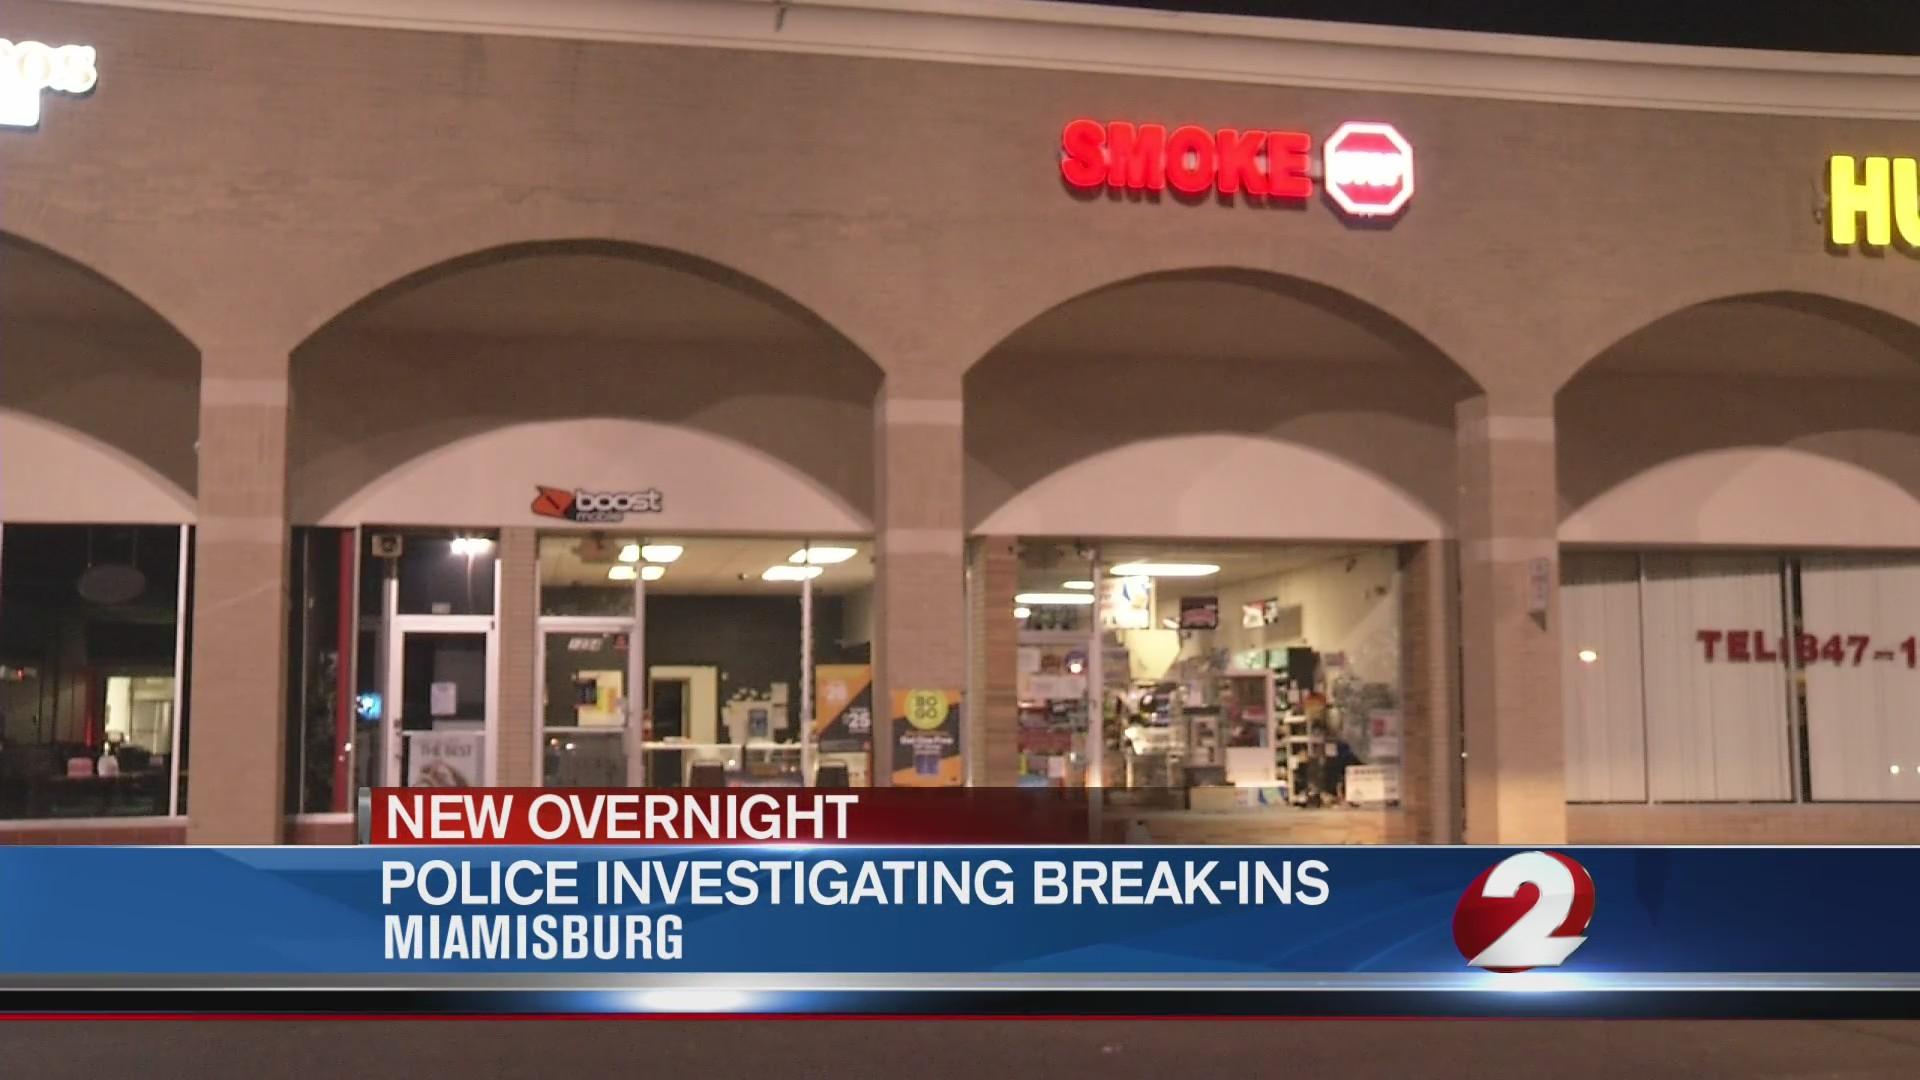 Two Miamisburg shops broken into overnight